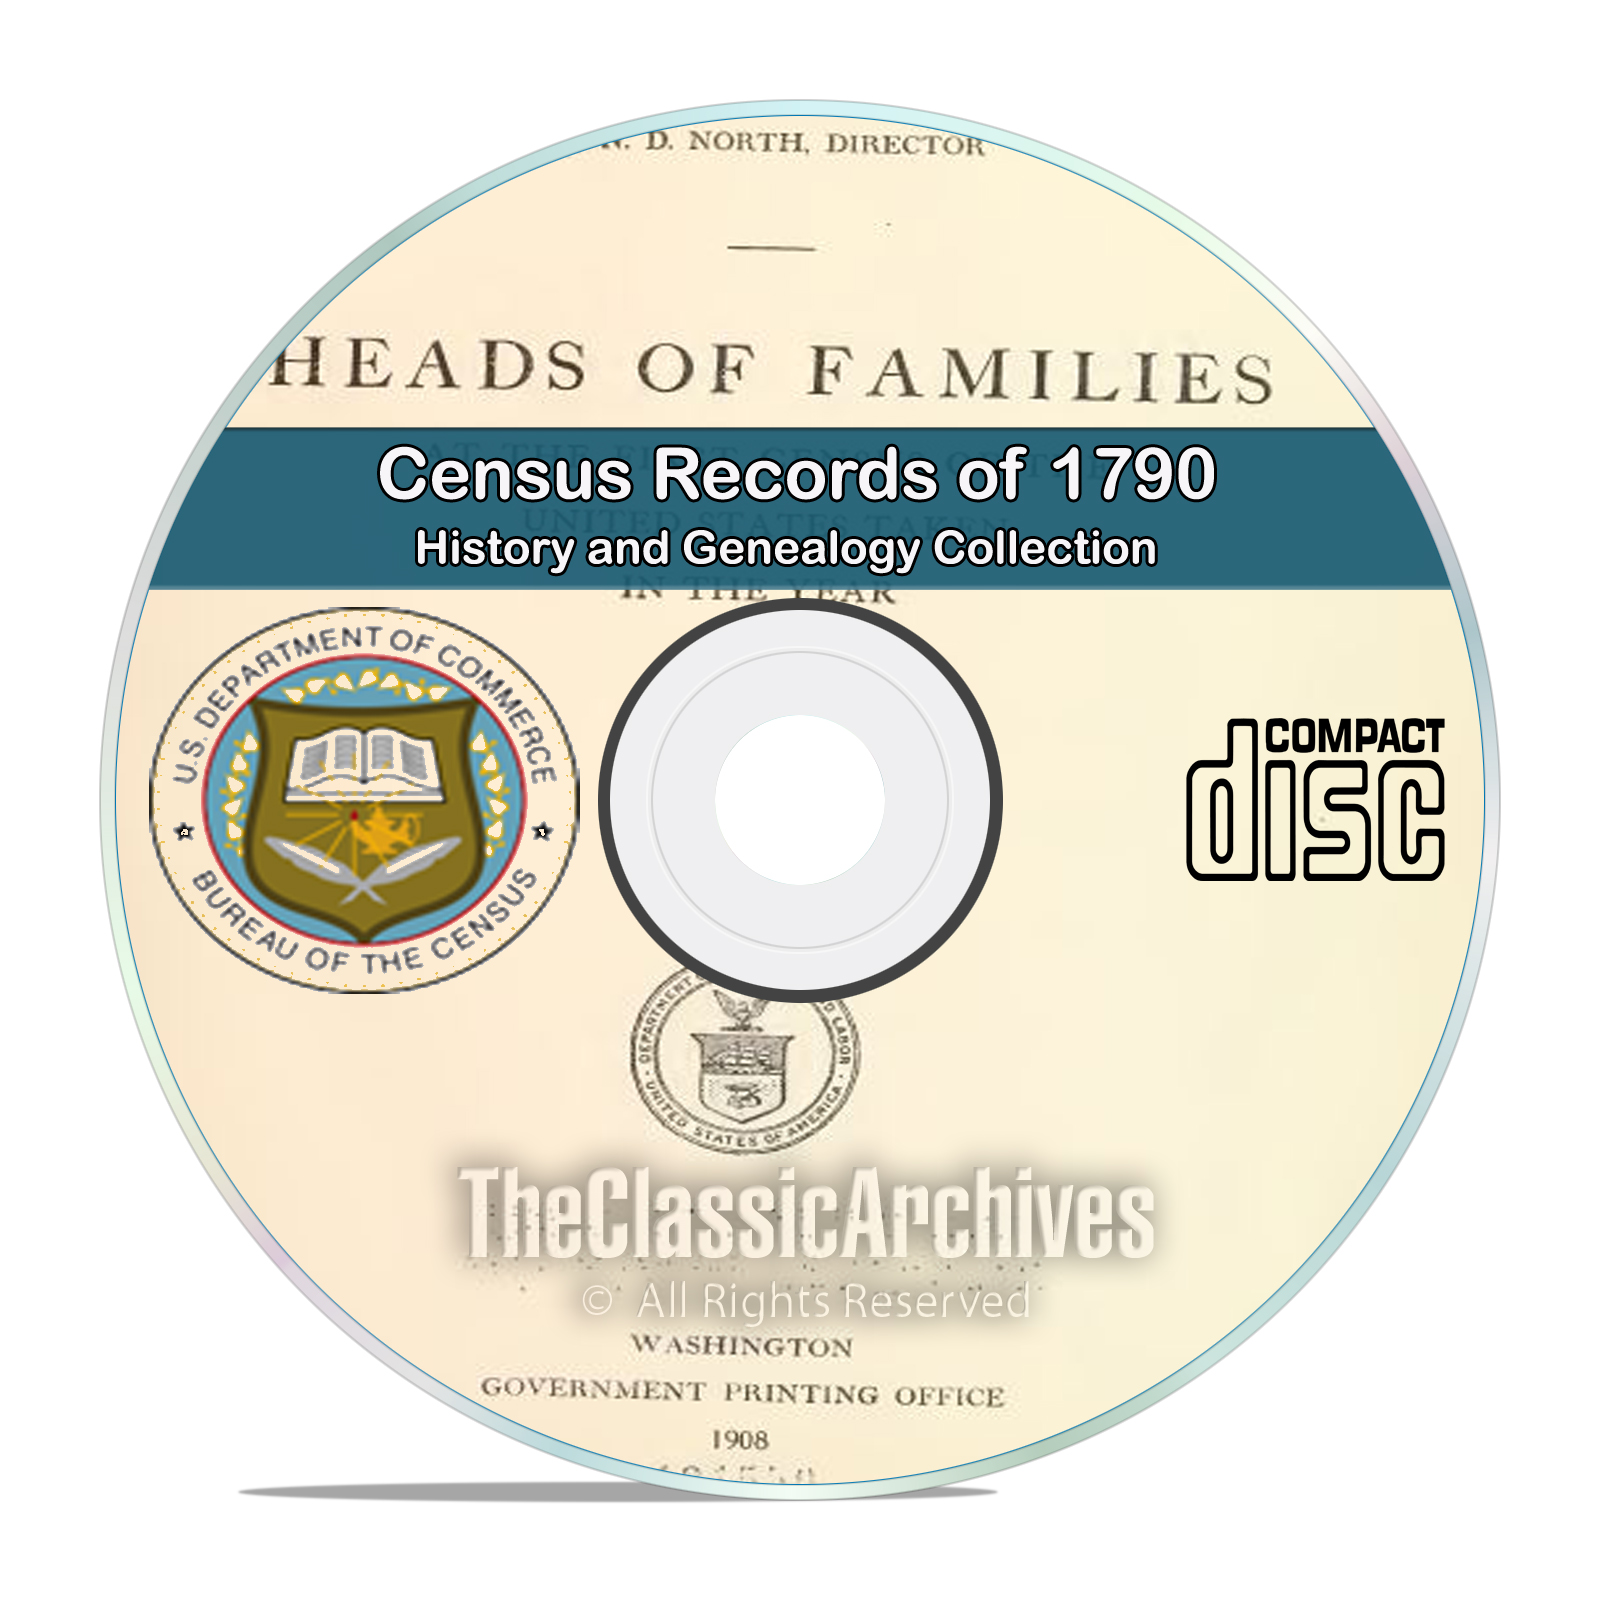 1790 Census Records, 1st ever US Census, 12 out of print volumes CD